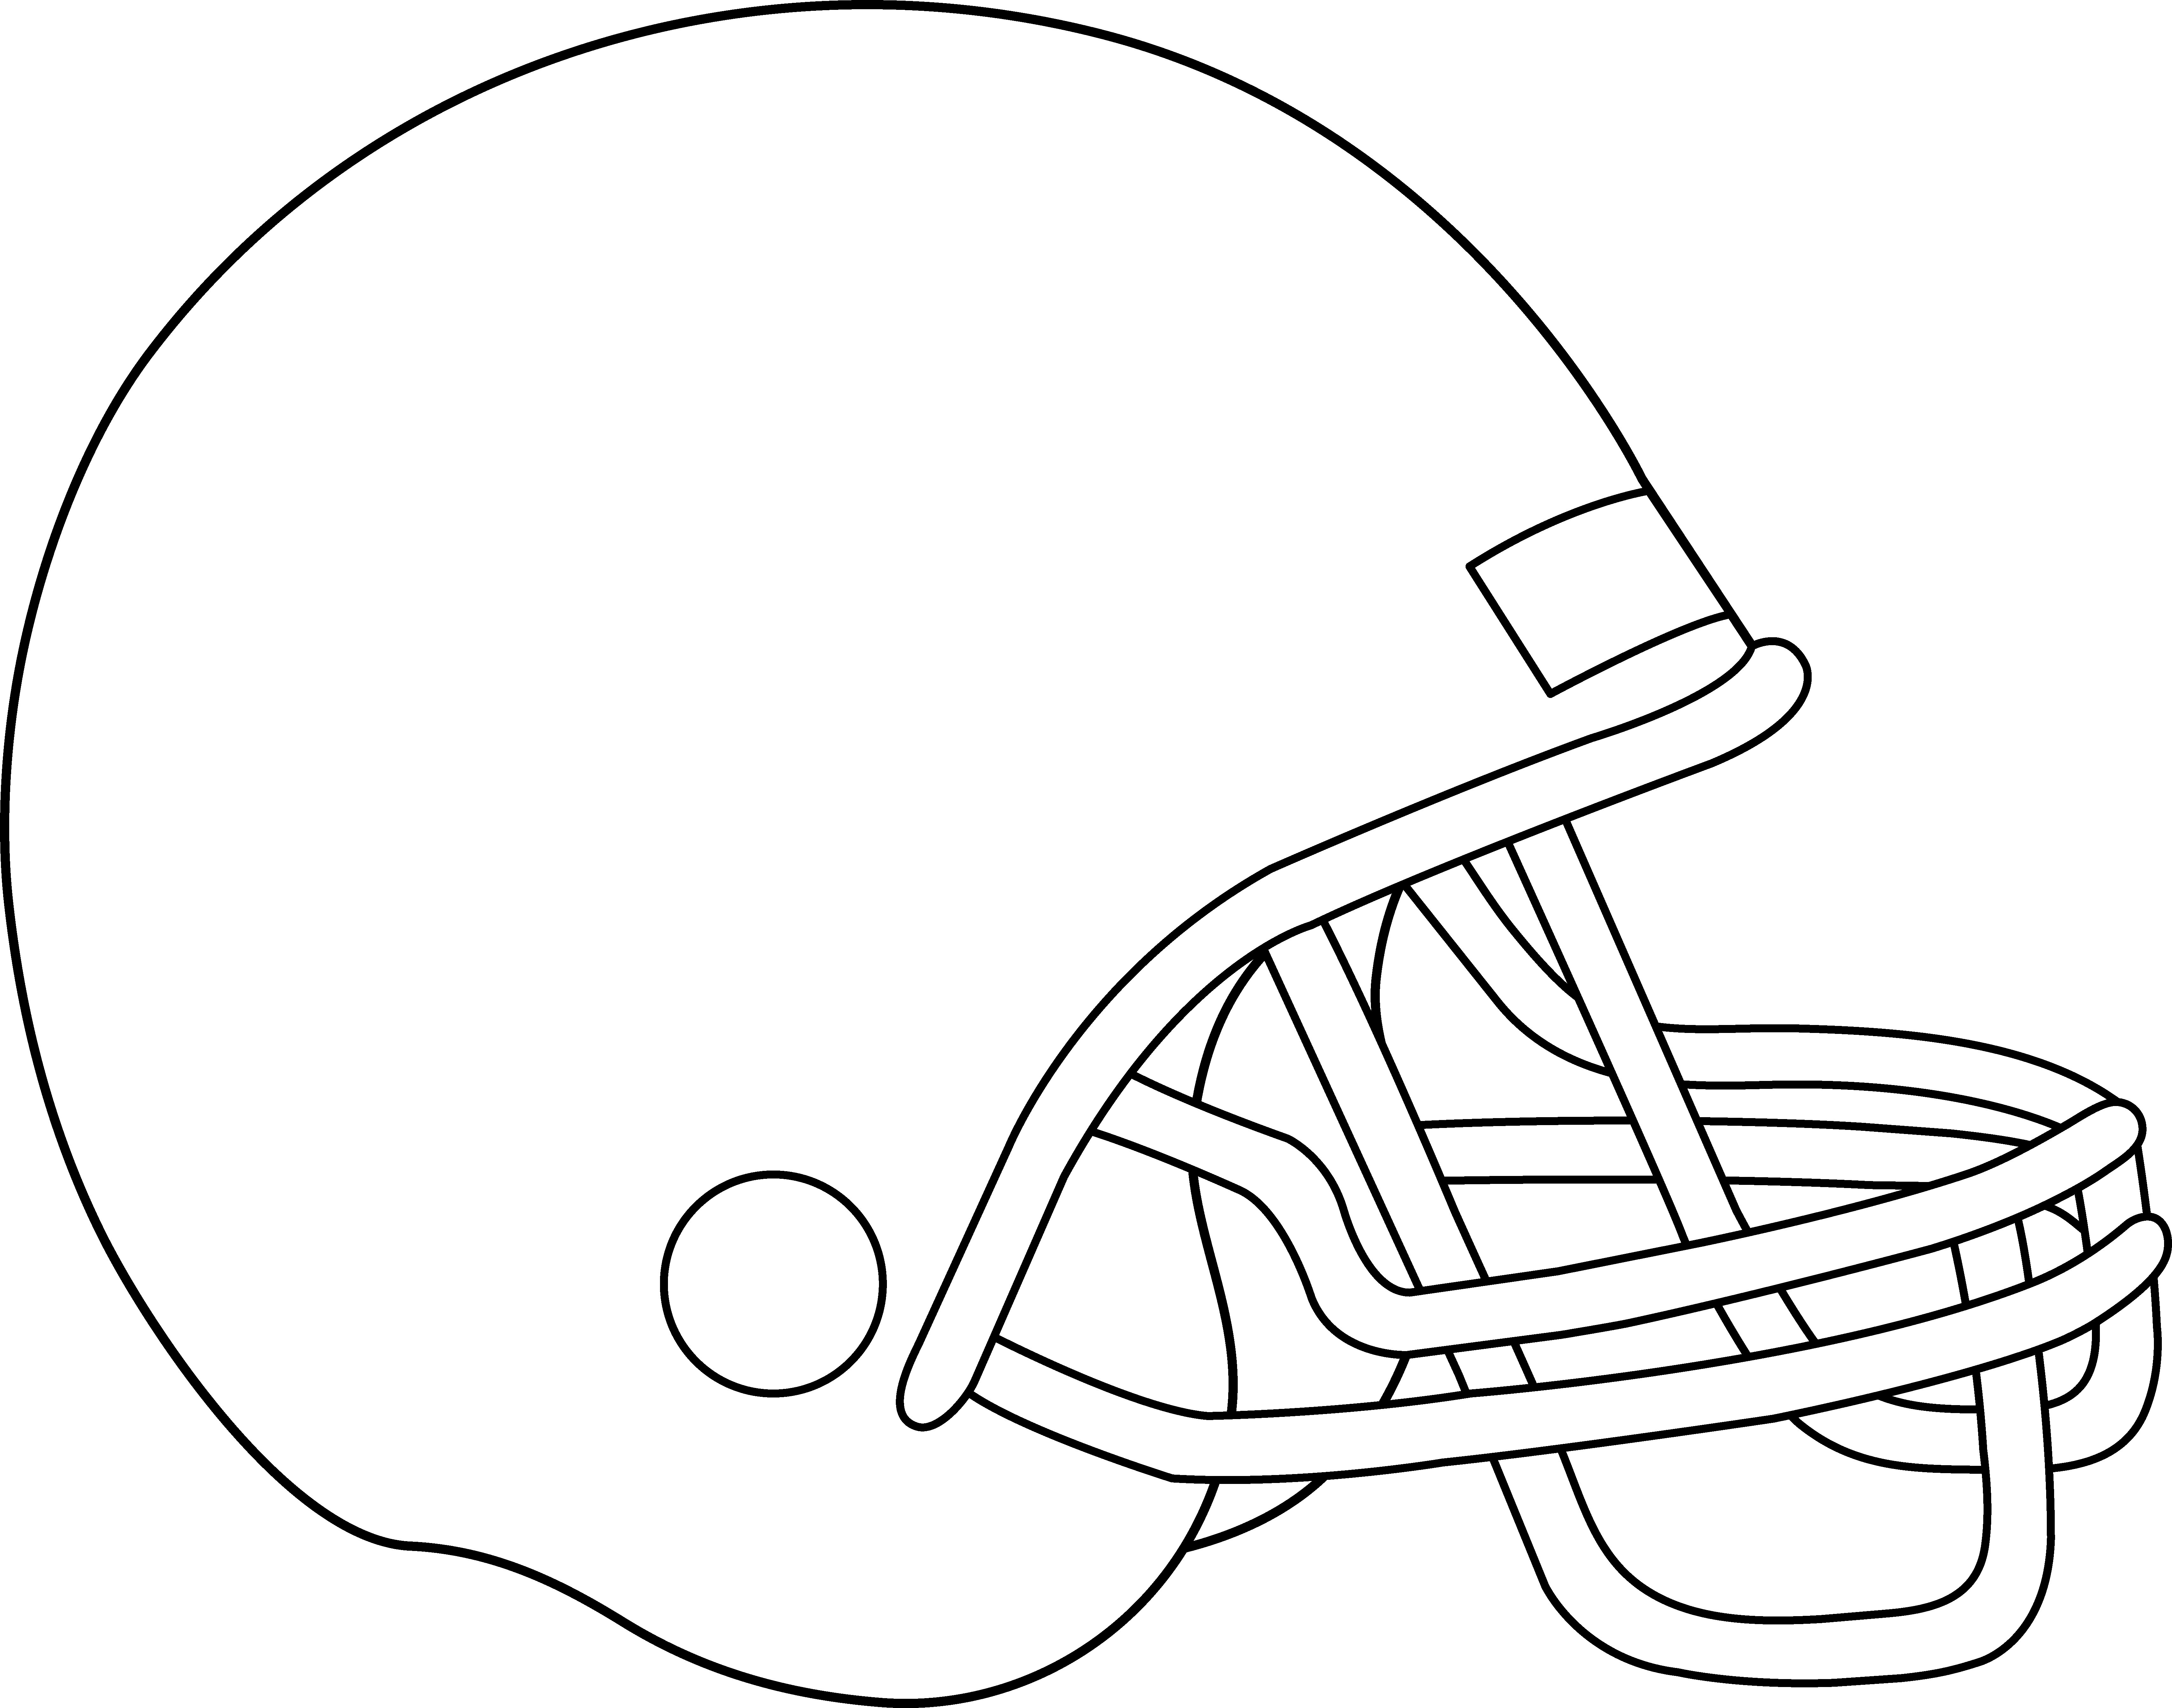 football images to colour vector illustration football with trophy coloring page colour football images to